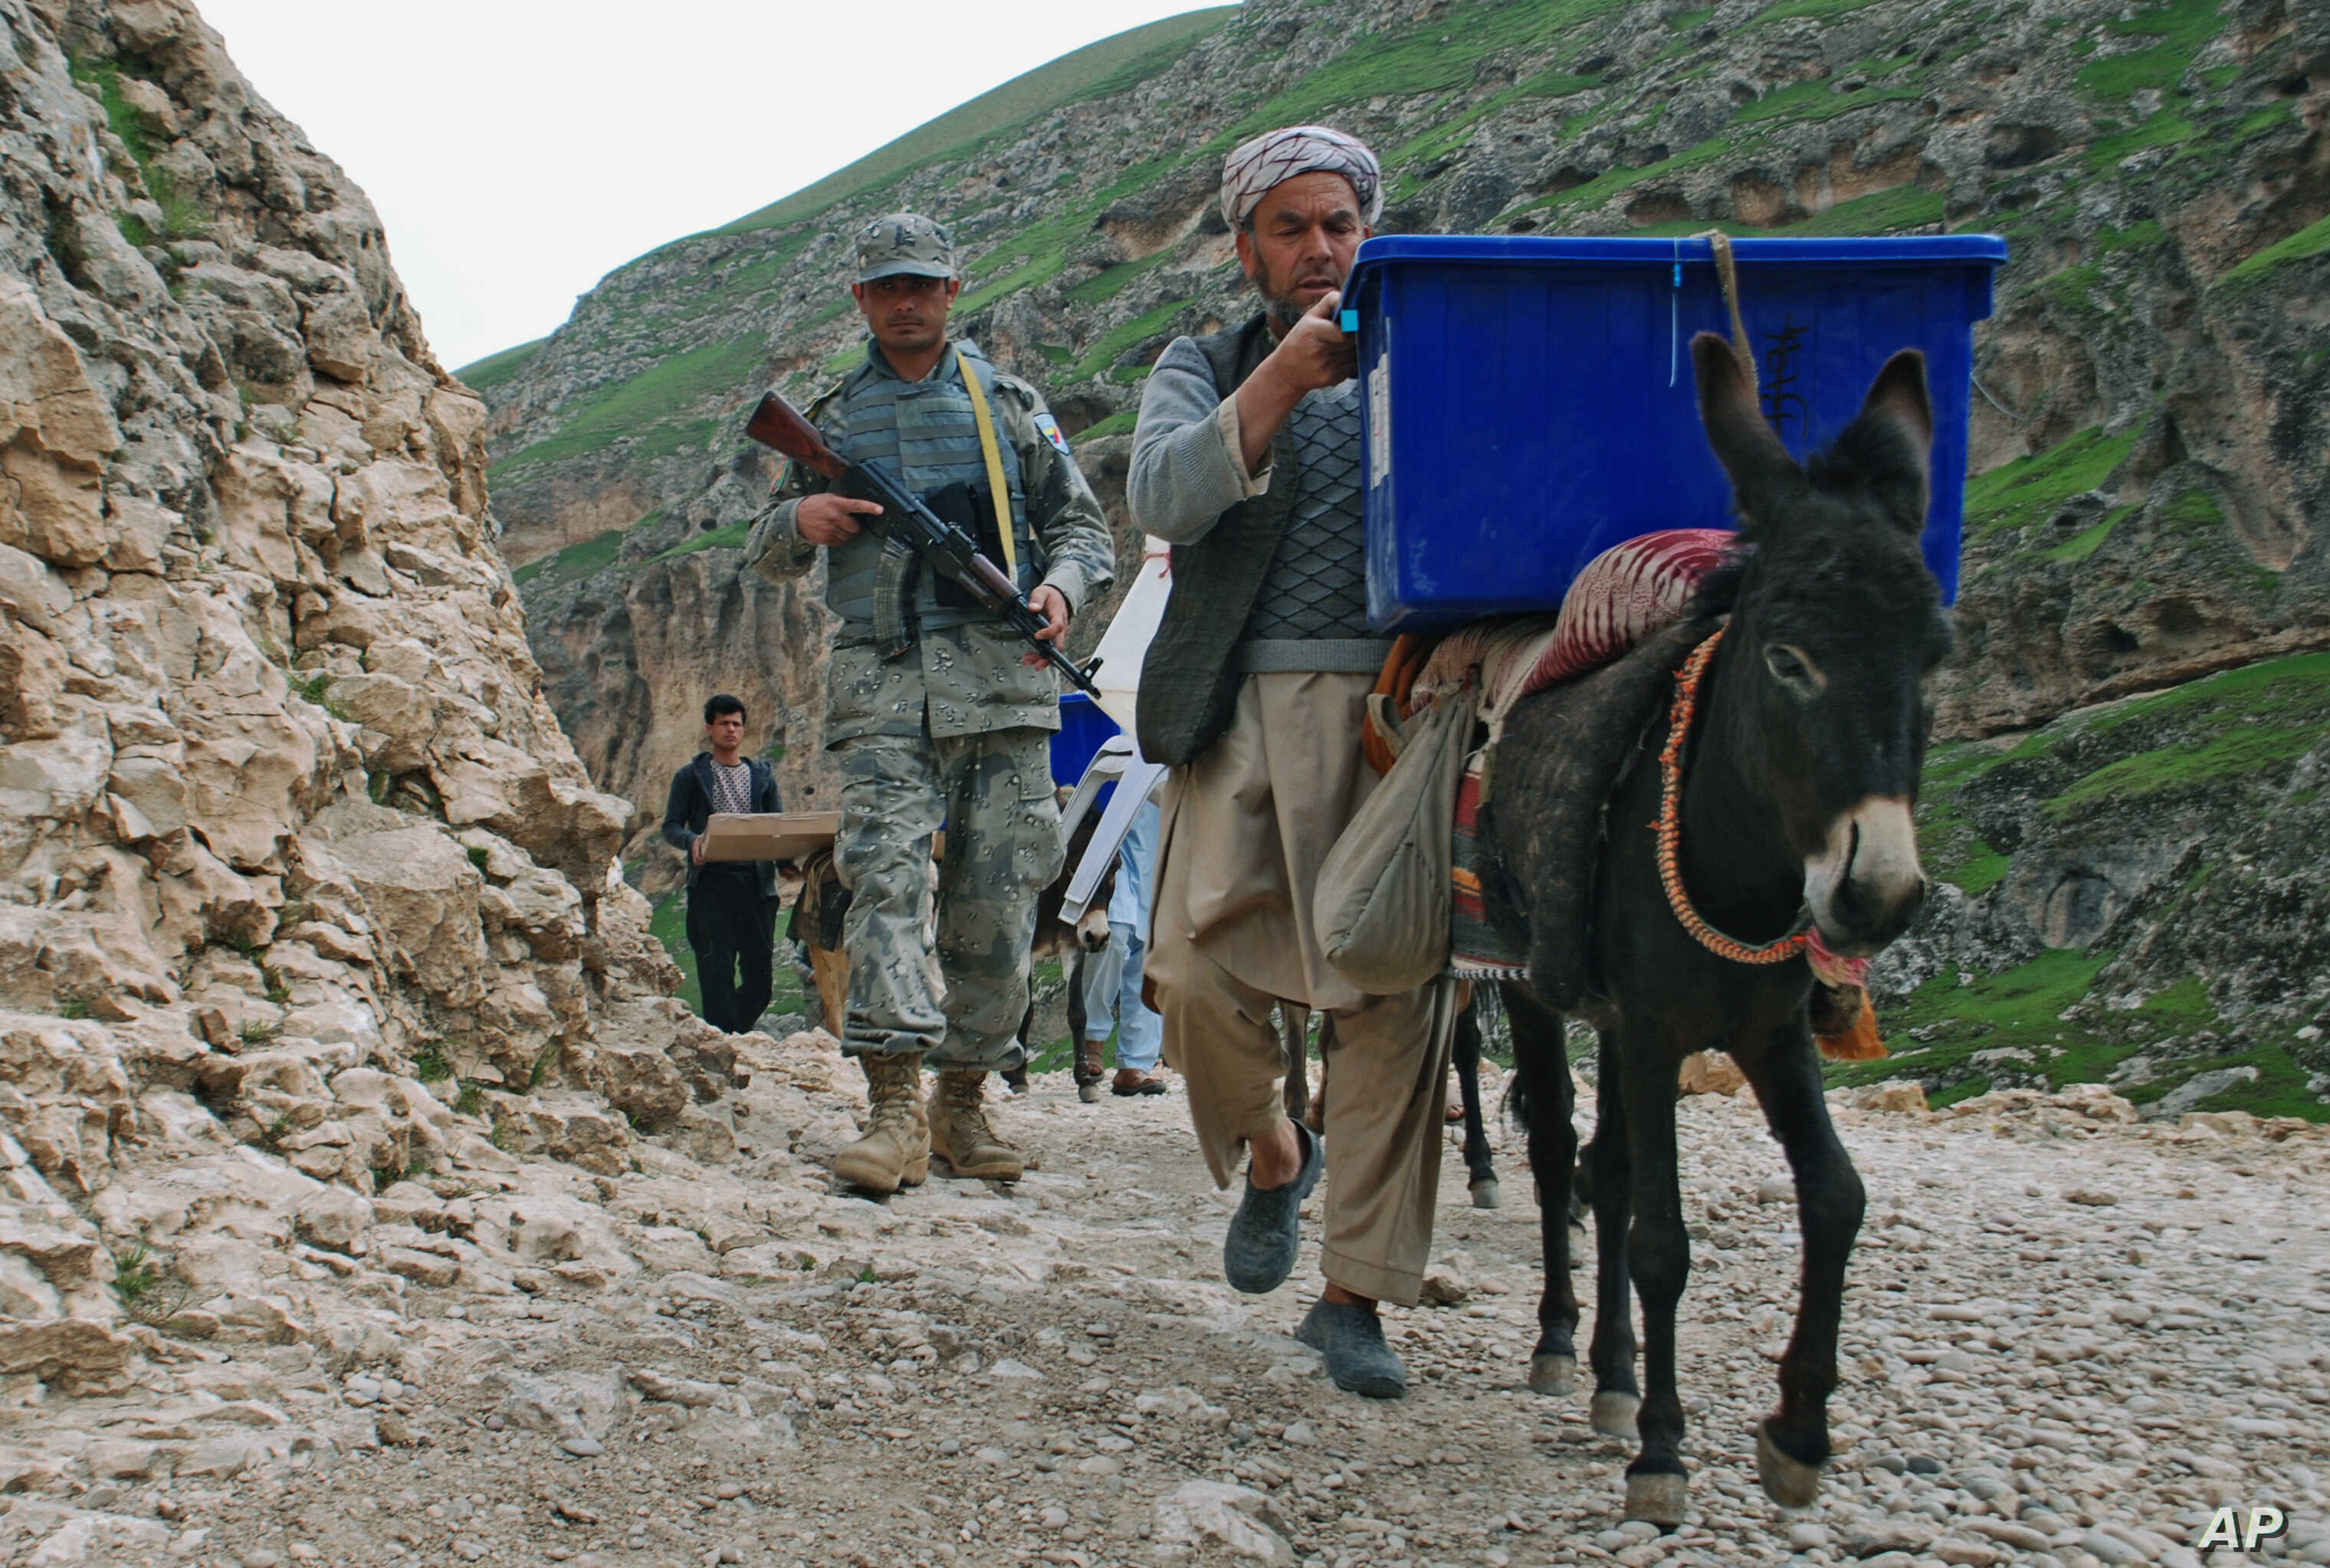 Afghan election workers use donkeys to transport ballot boxes and election materials to polling stations as walking through Mazar-i-Sharif to Kishindih district in Balkh province, Afghanistan, April 3, 2014.